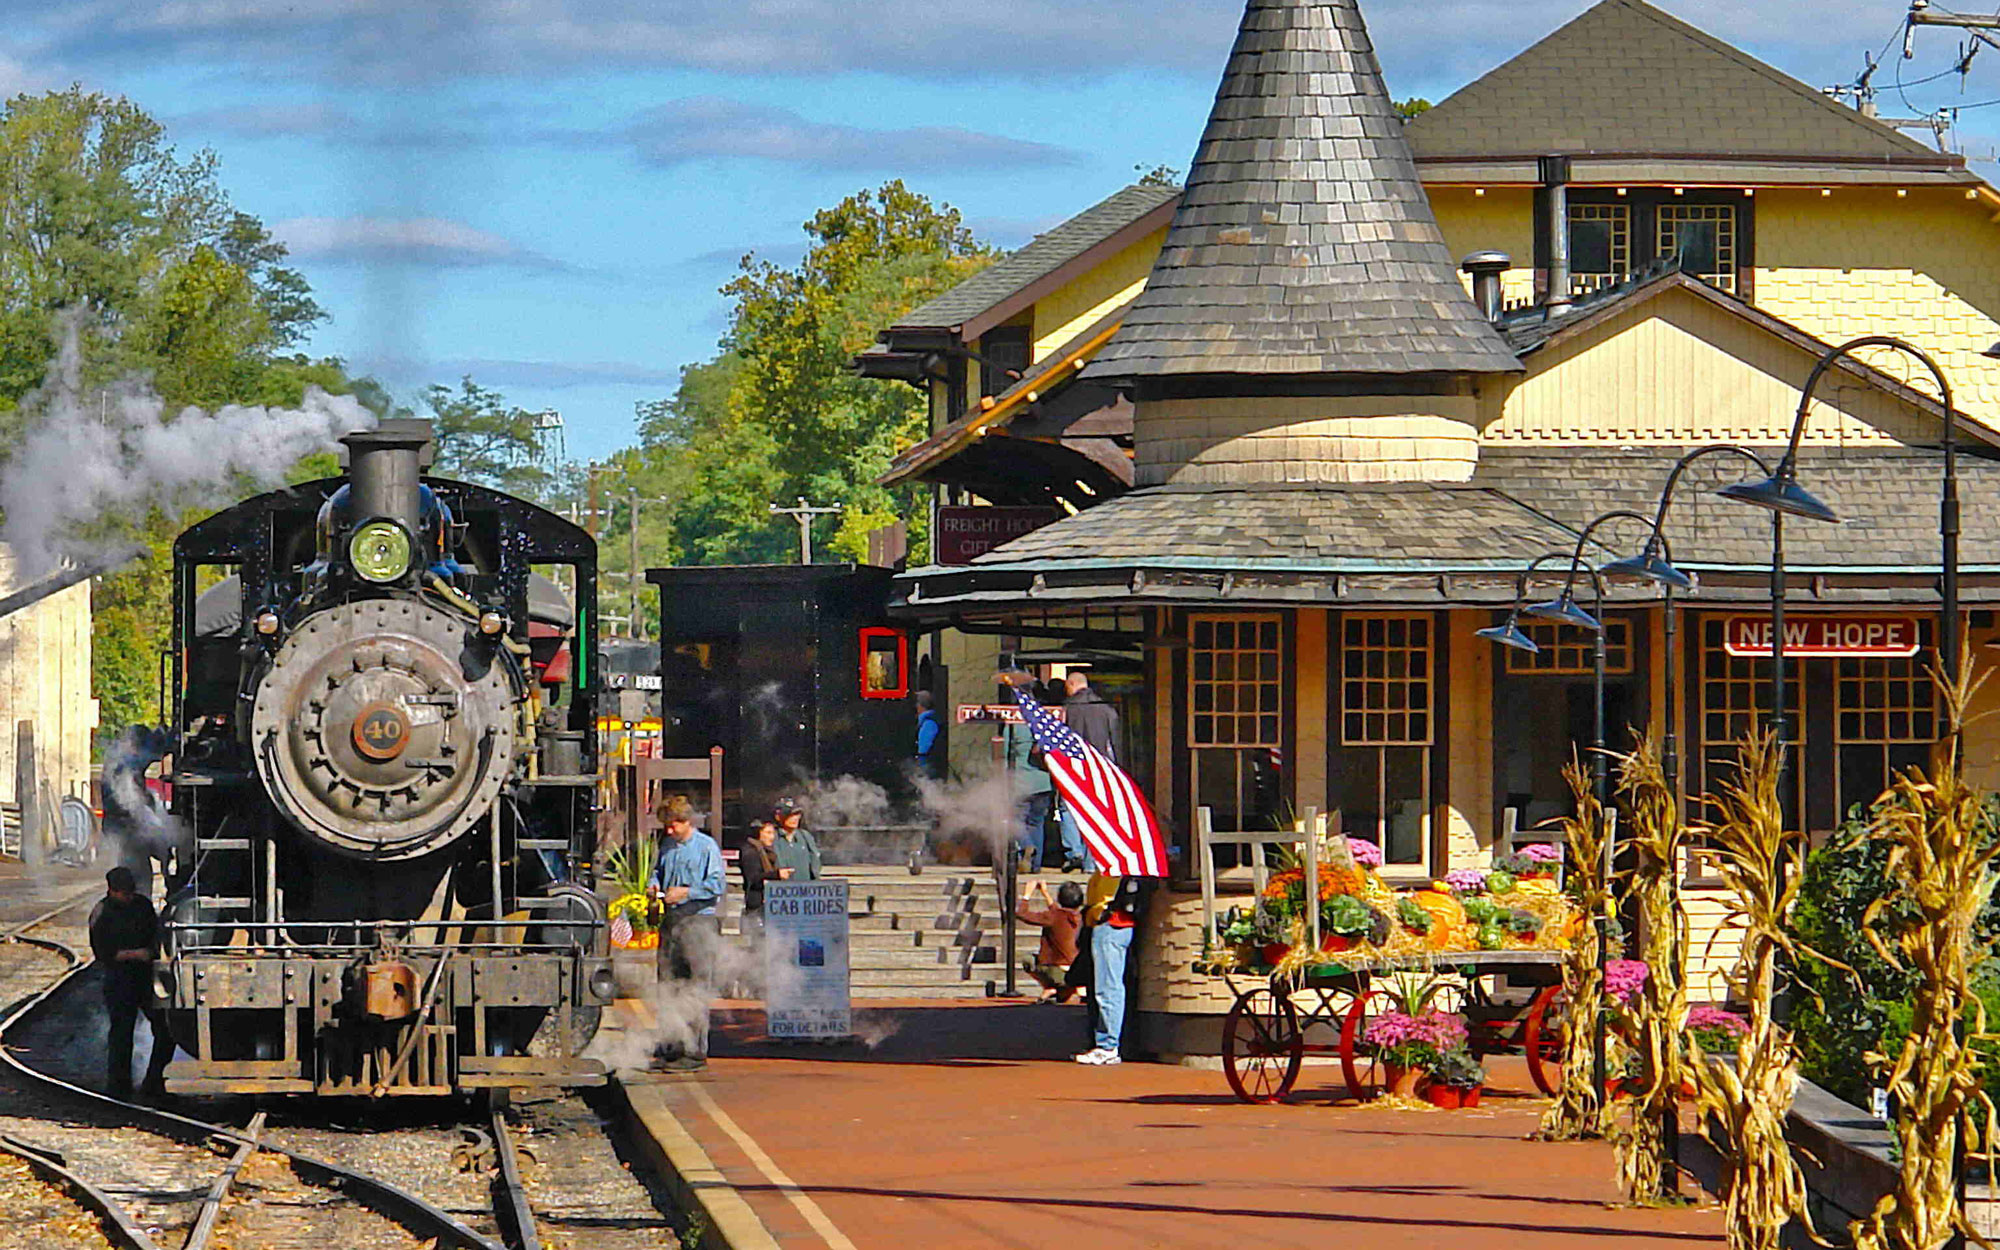 America's Best Towns for Halloween: New Hope